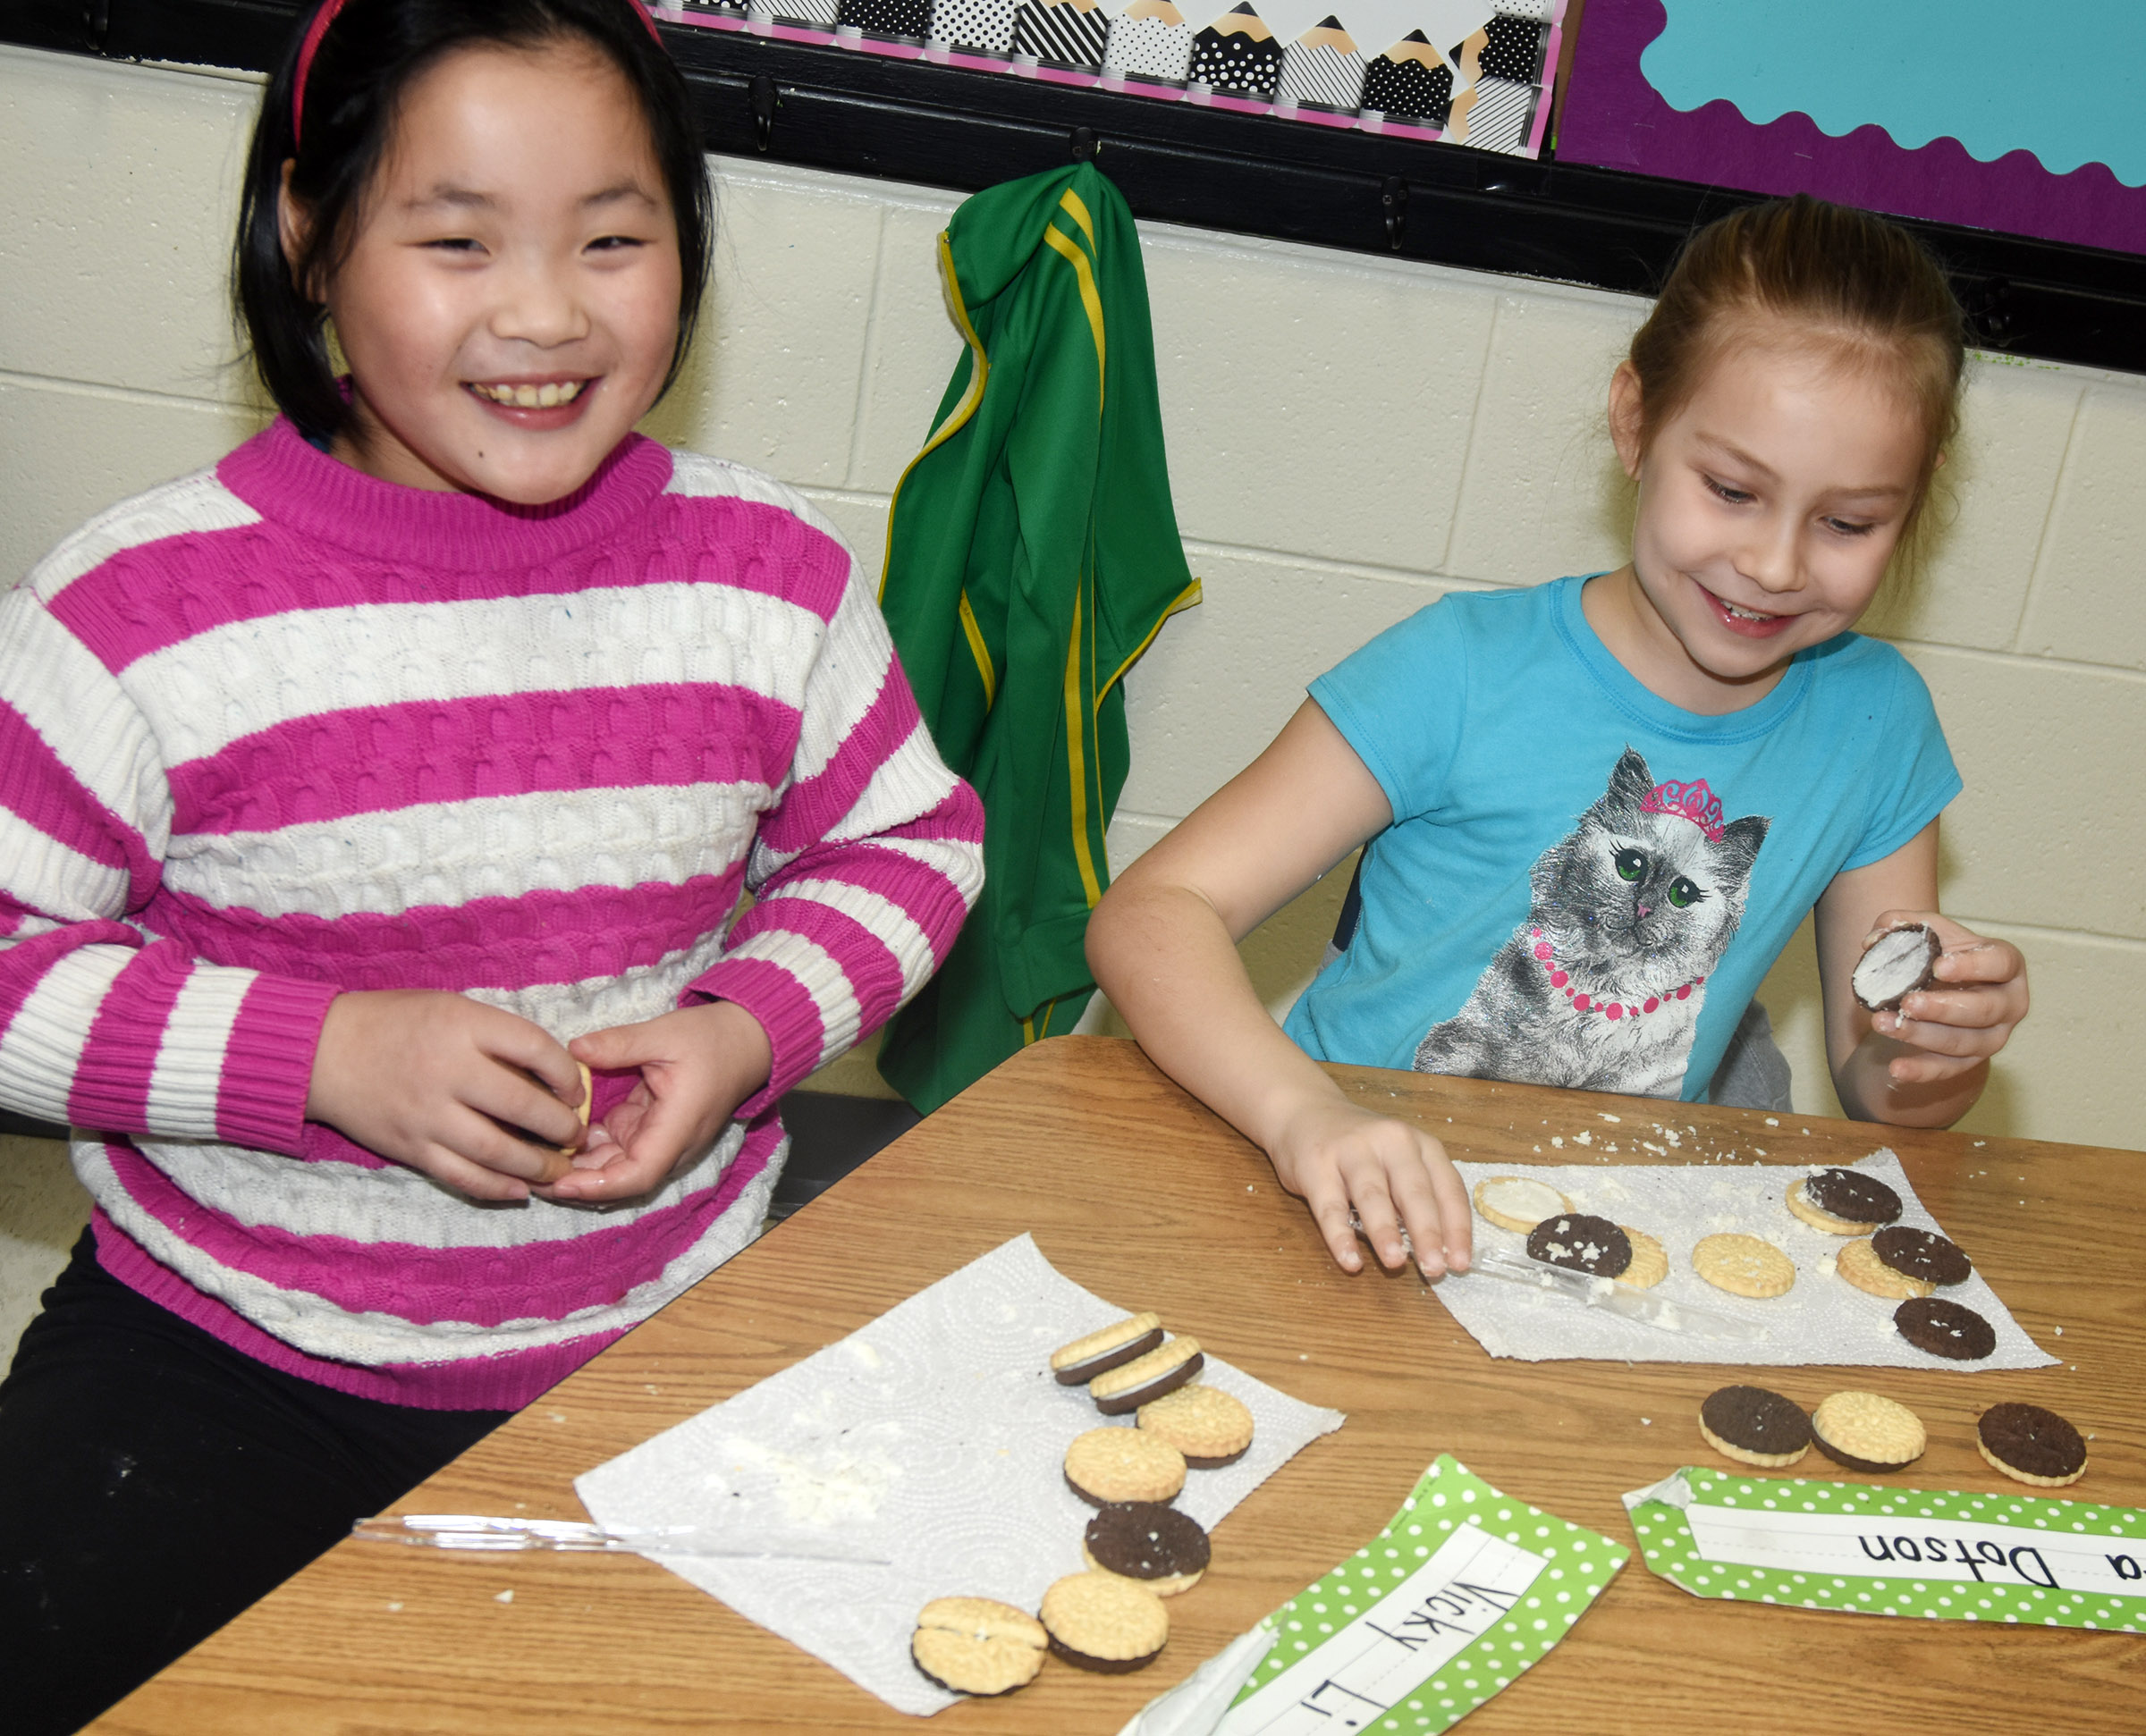 CES first-graders Vicky Li, at left, and Kira Dotson makes the phases of the moon by using cream filled cookies.